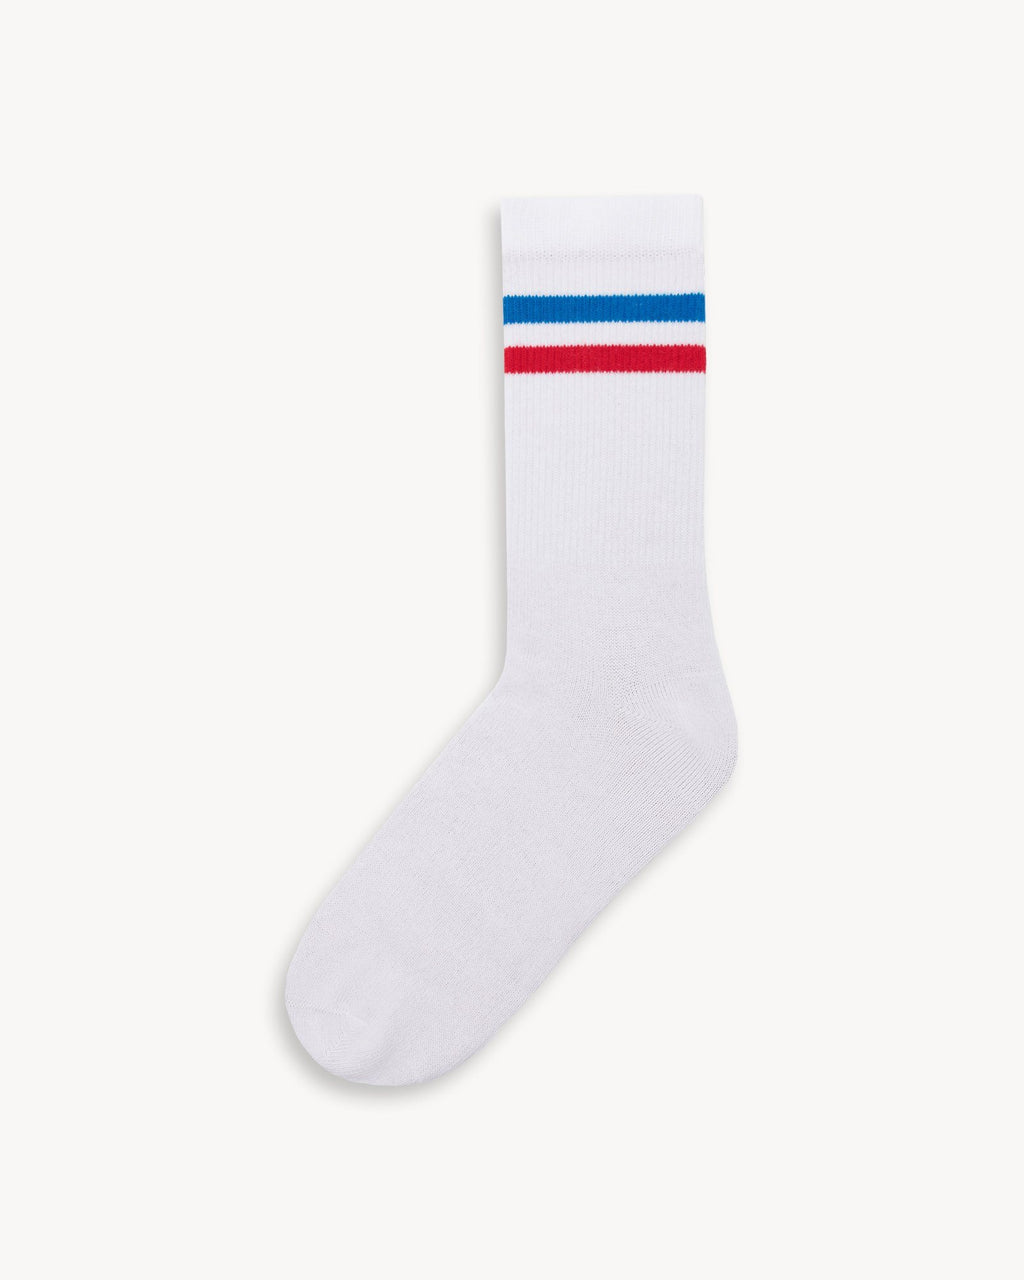 variant_2 | EN White Socks Men Tennis | DE Socken Weiß Herren Tennis